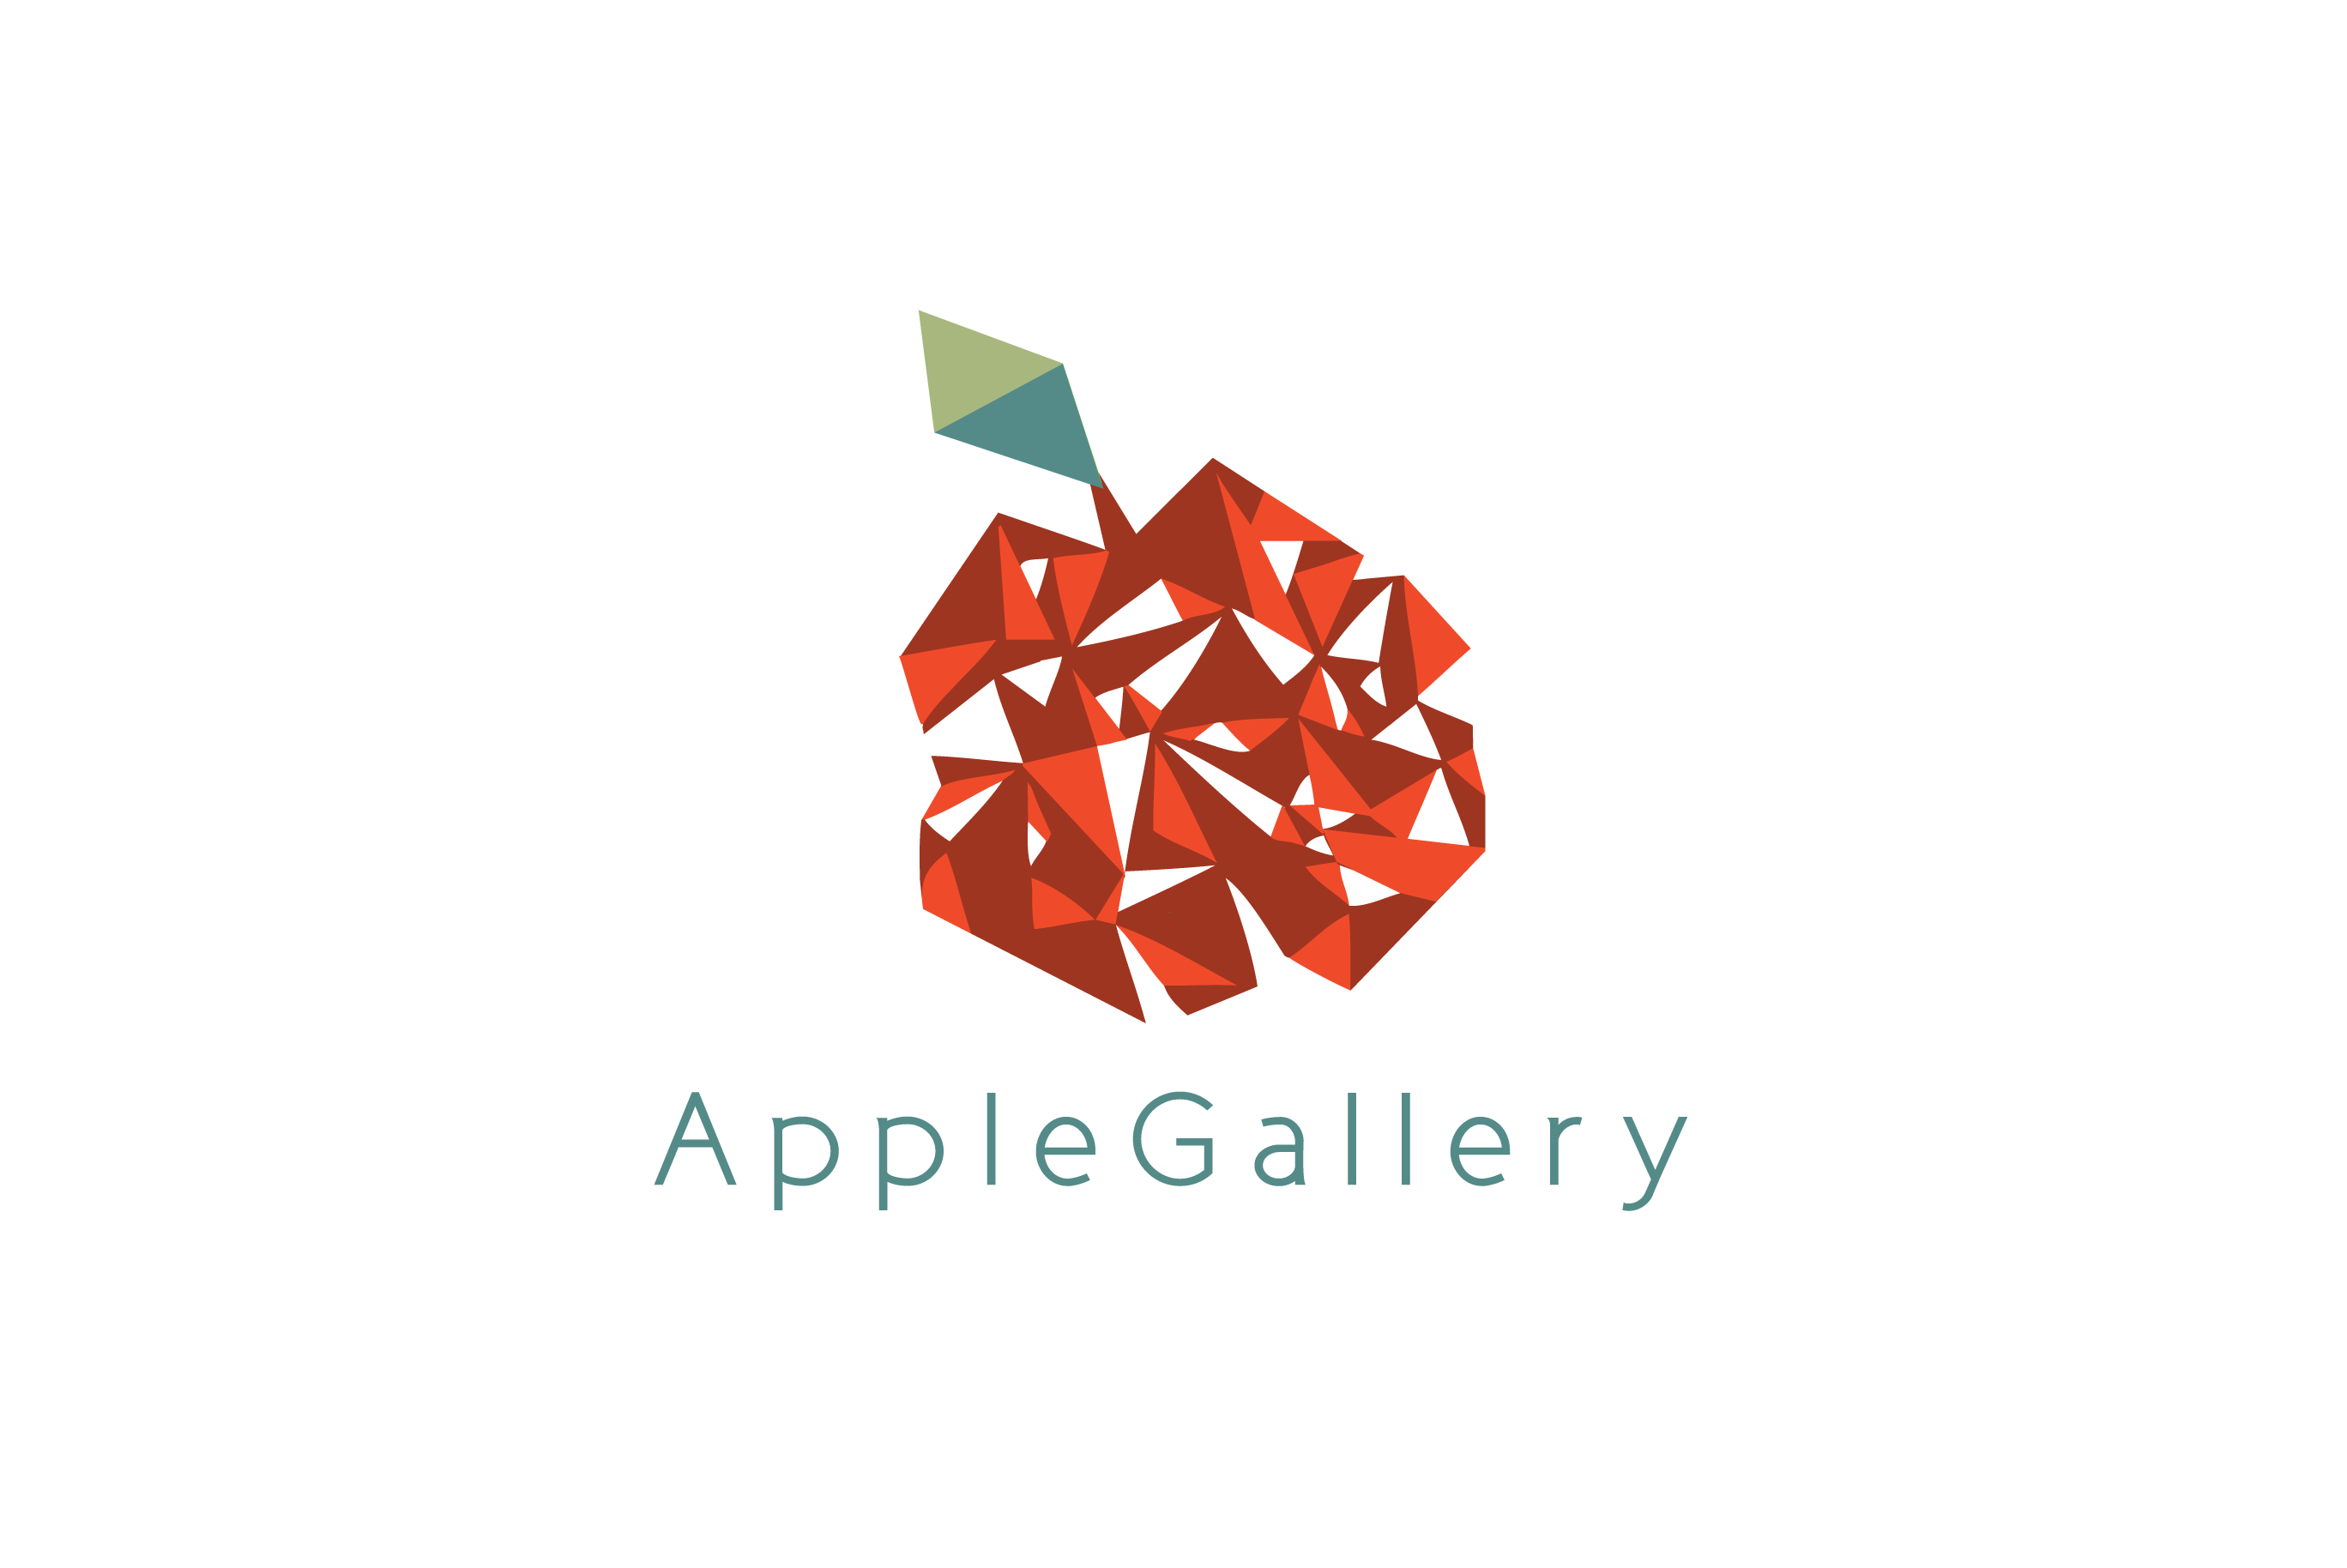 AppleGallery Apple Logo Design.